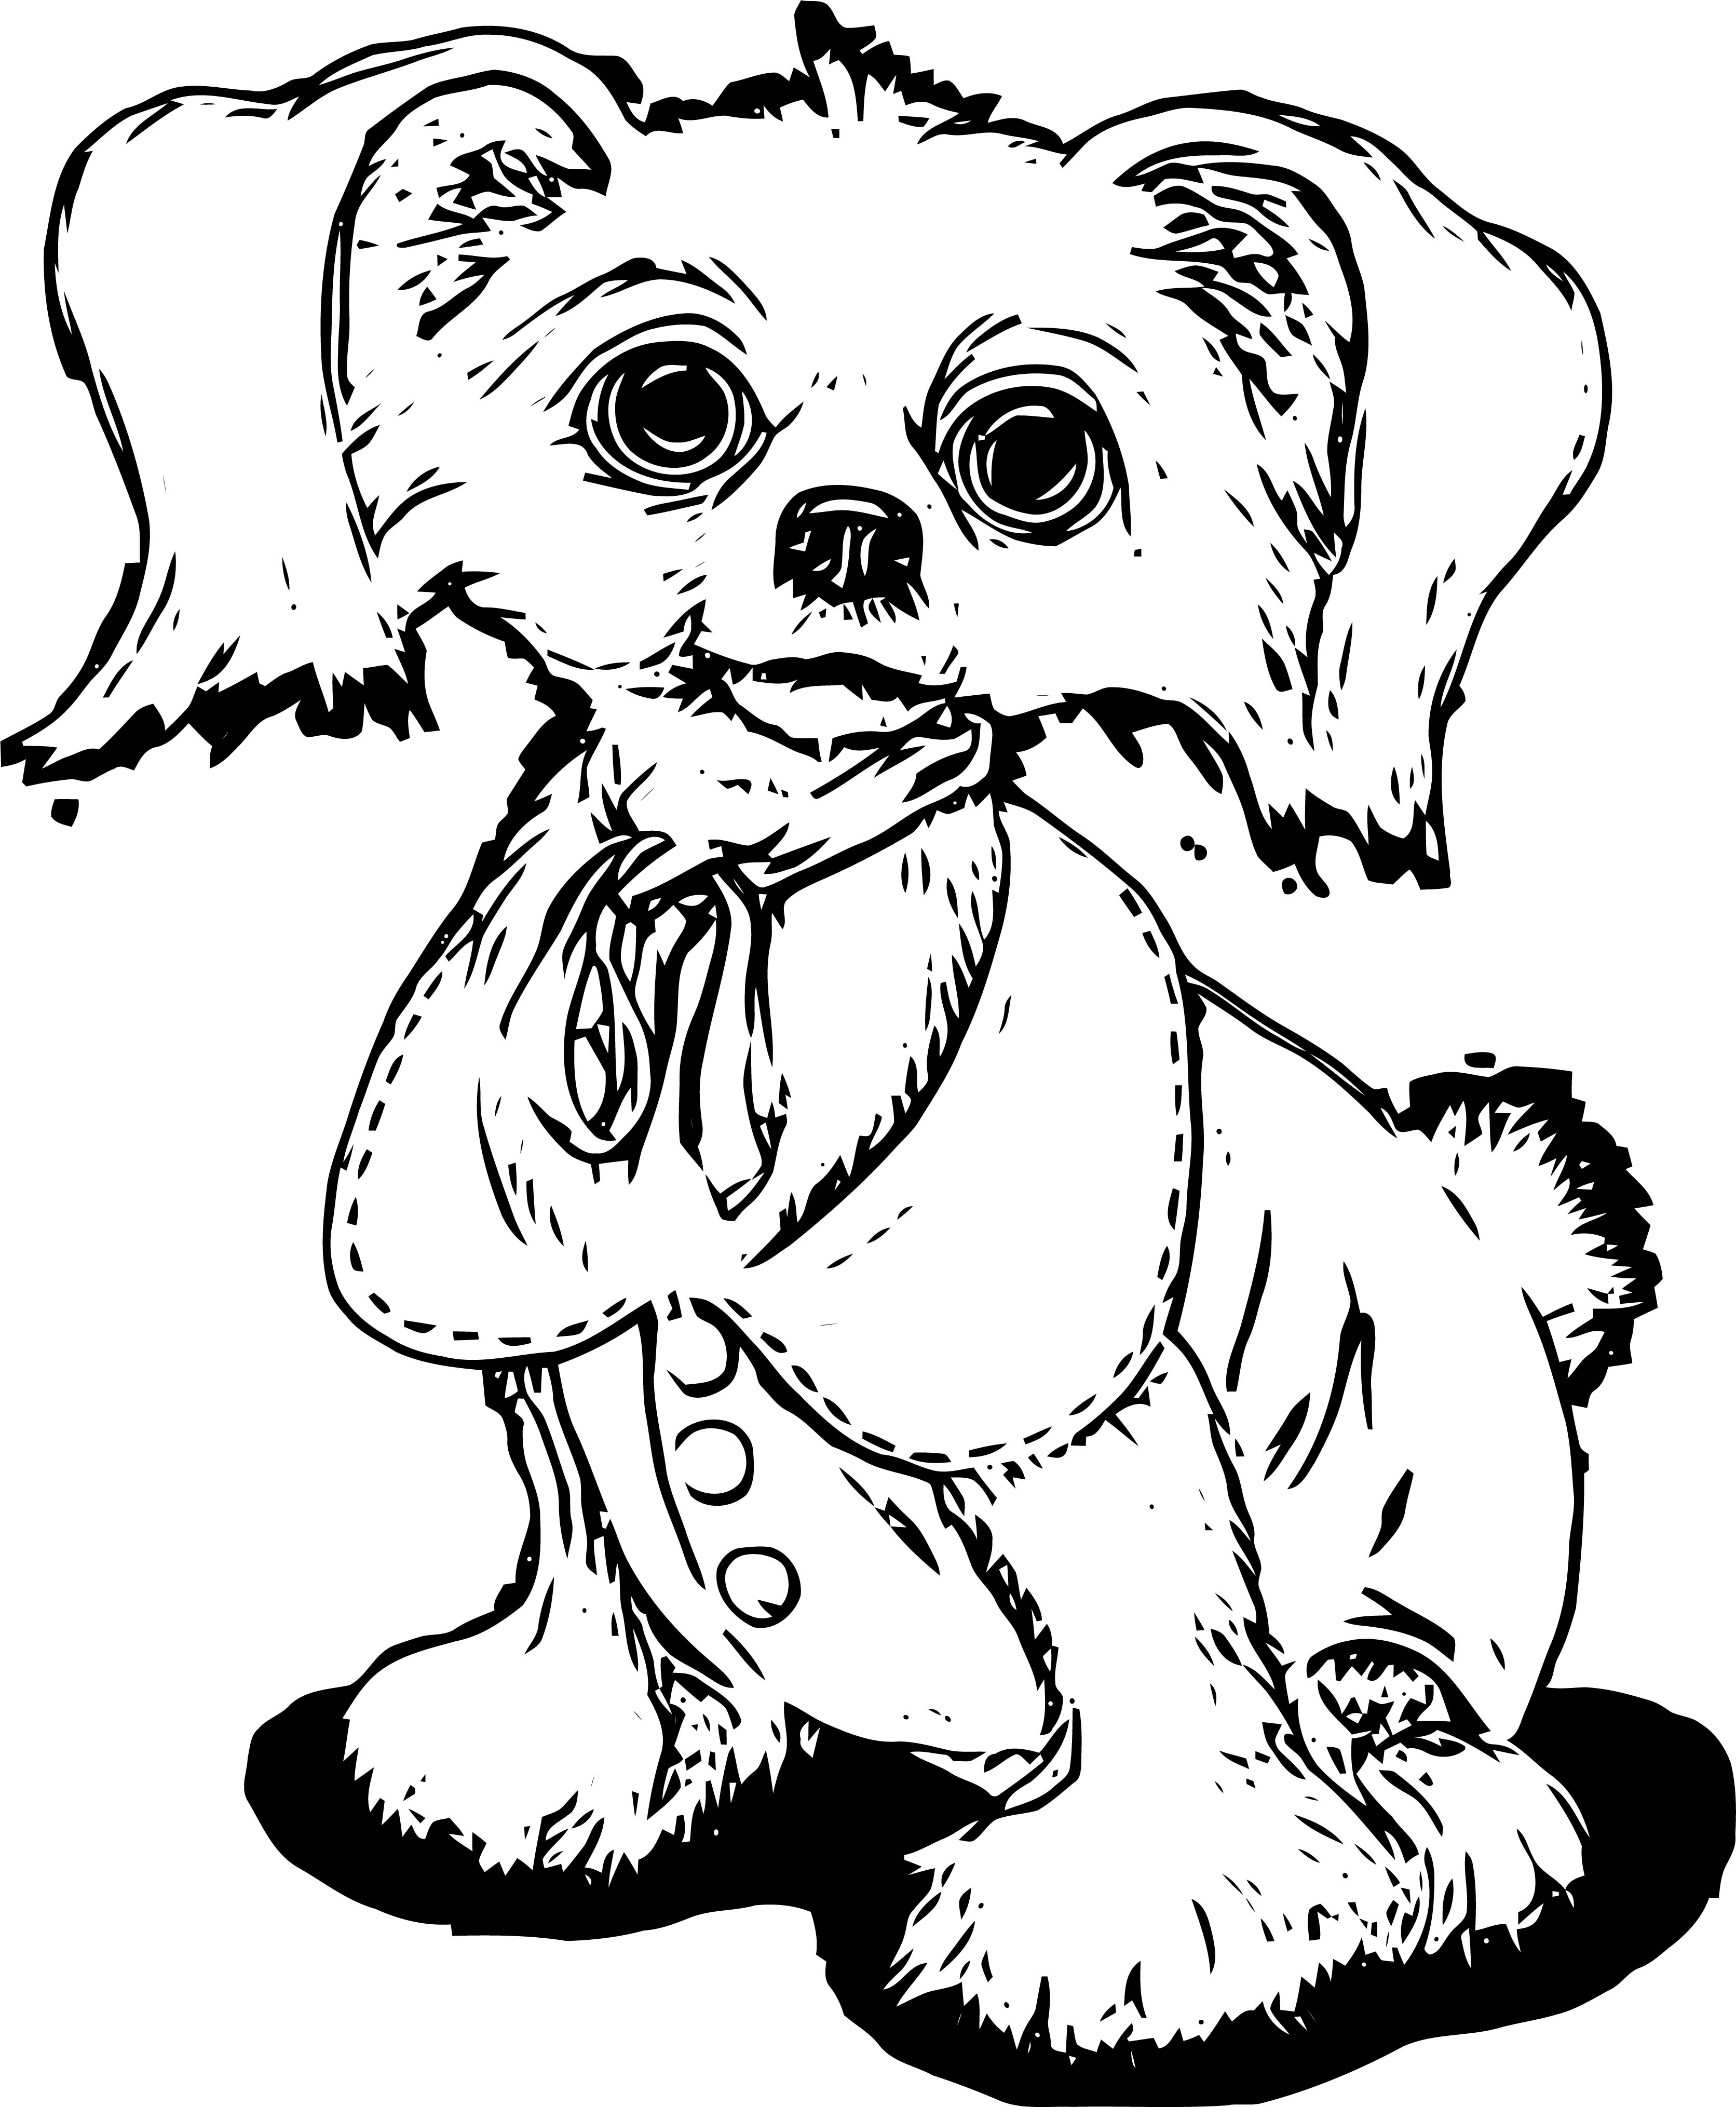 Puppy Dog Sketch Coloring Page